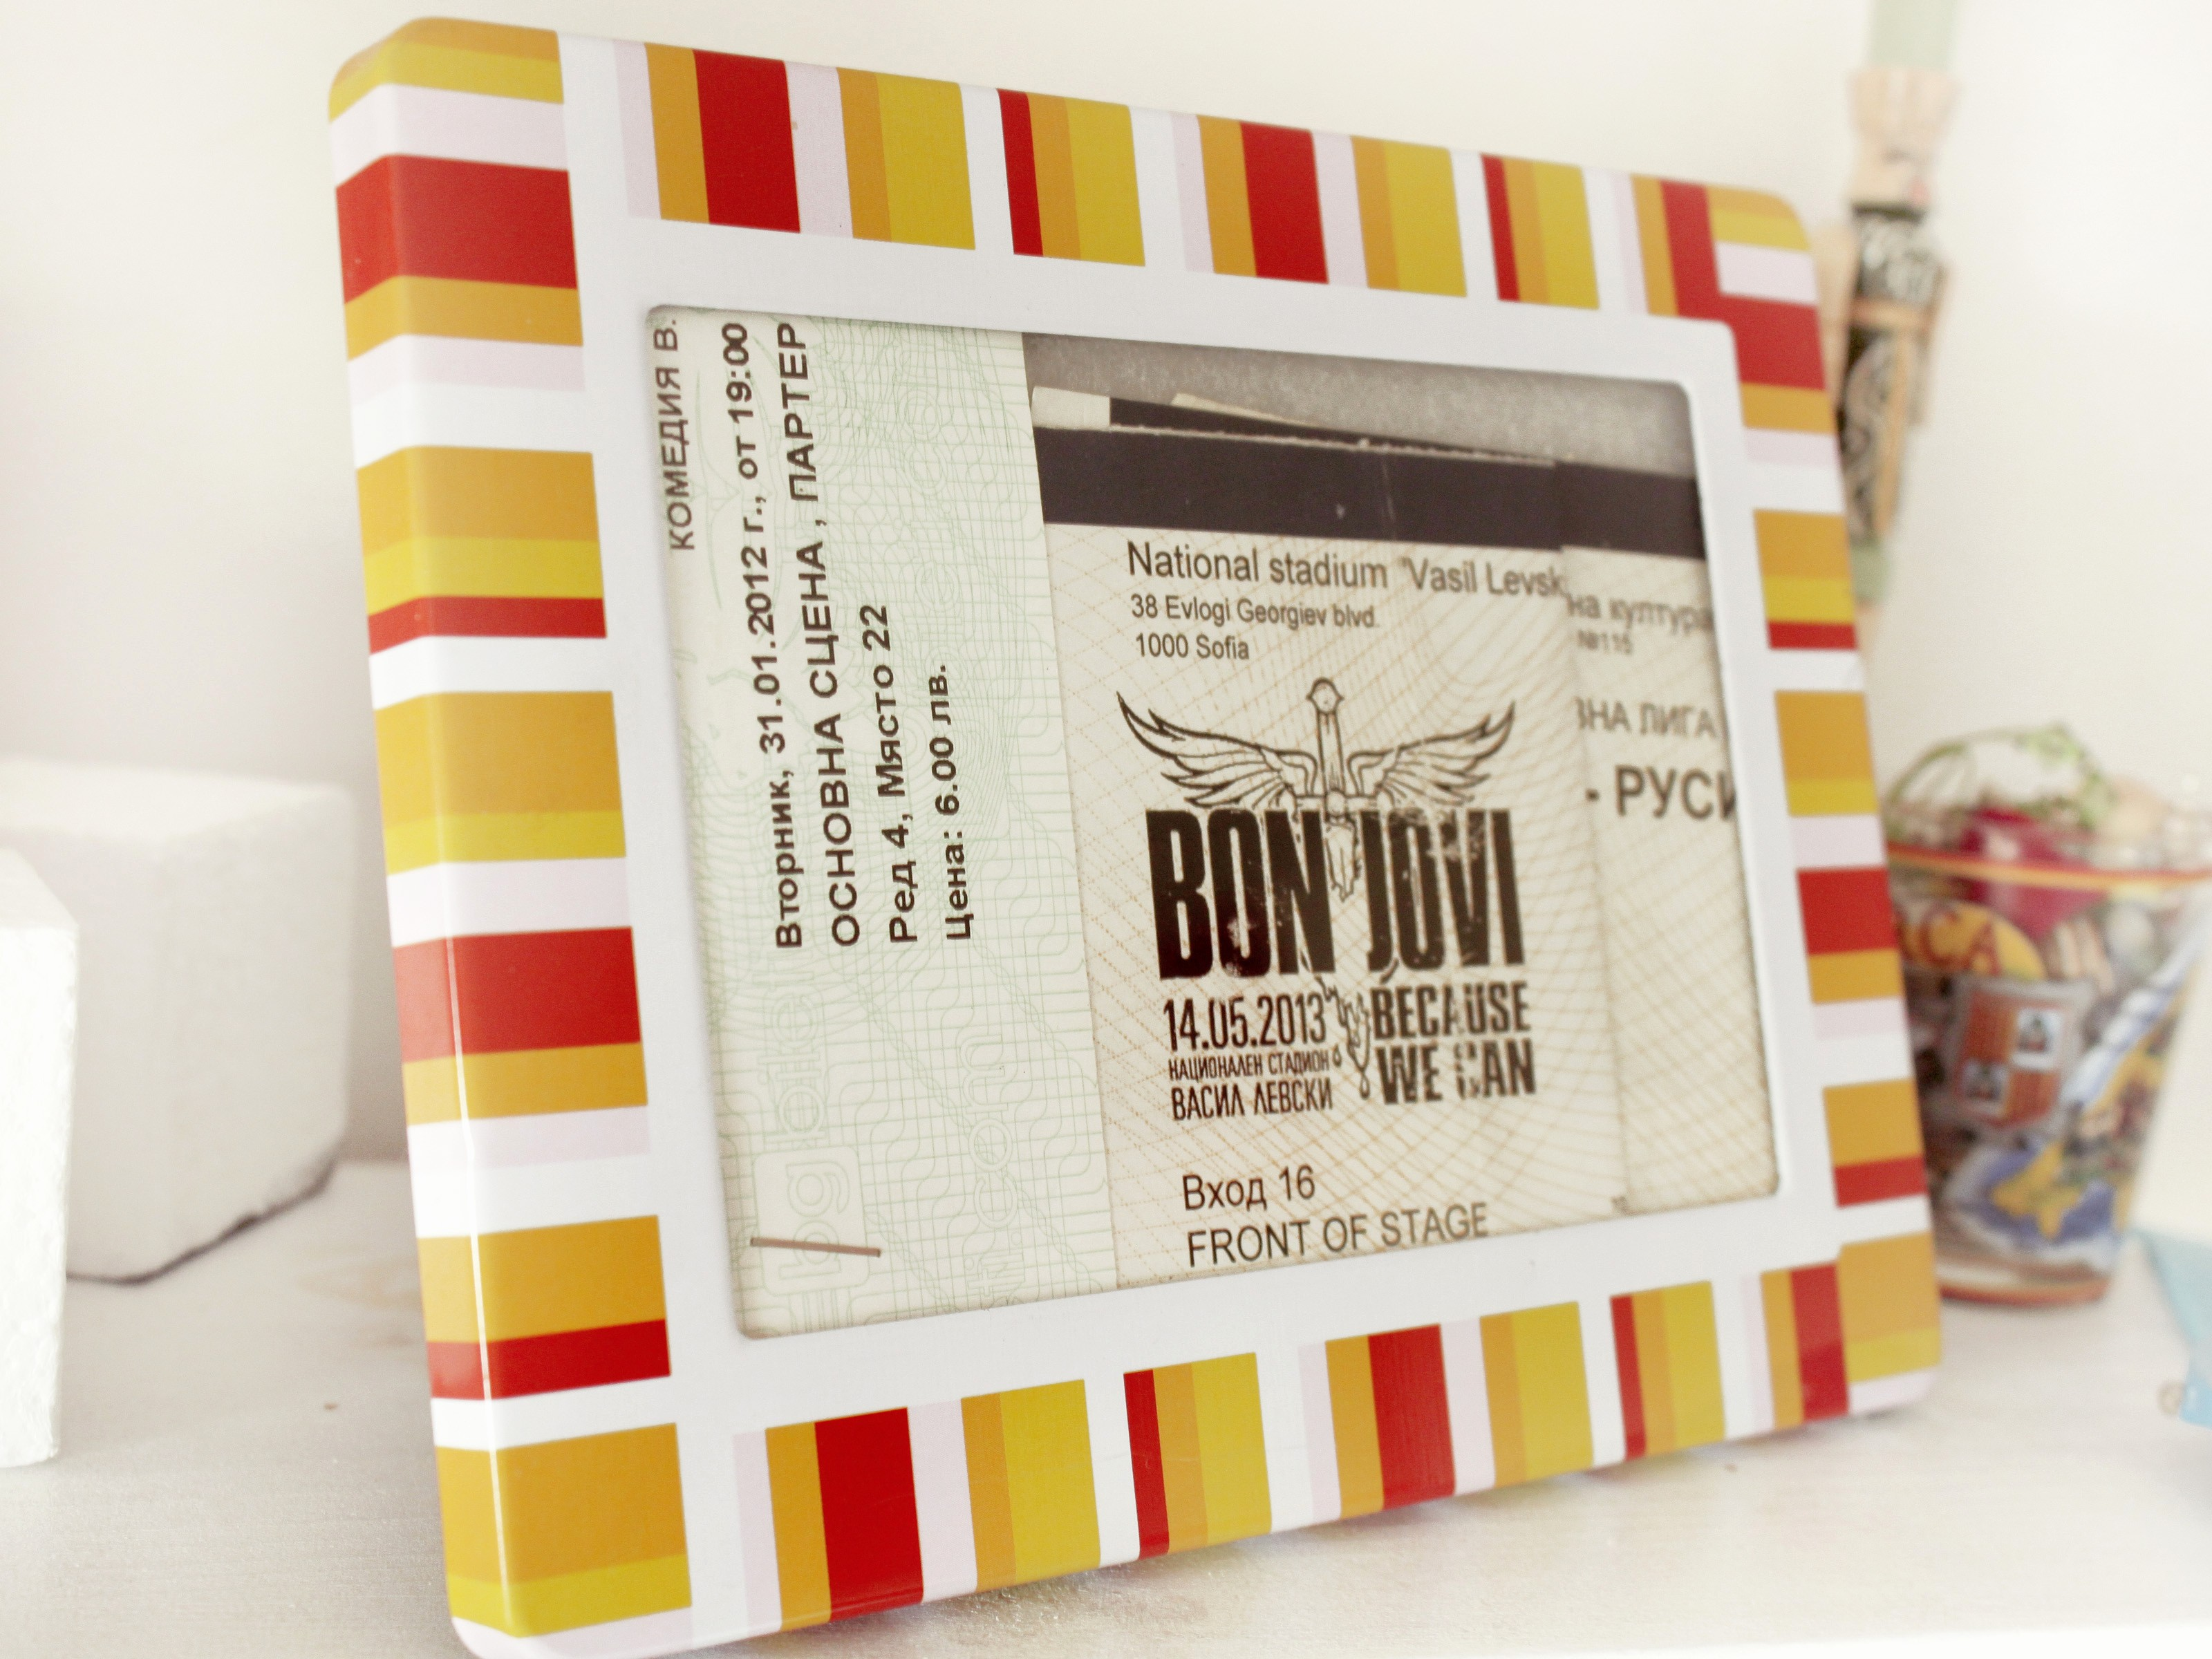 How to Make Concert Tickets Inspirational How to Make Artwork From Movie Concert Tickets 5 Steps